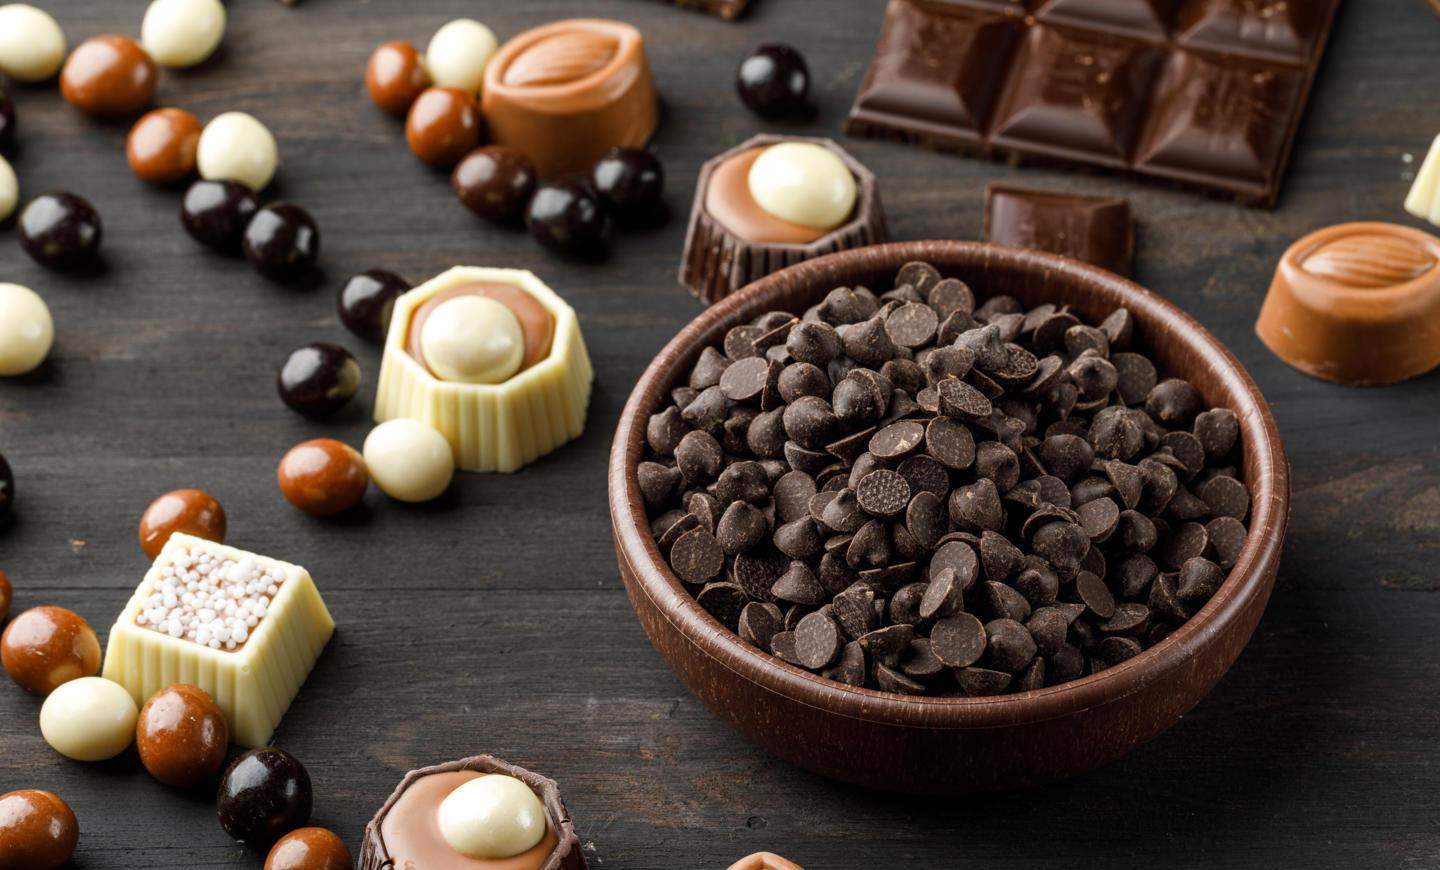 choco-drops-with-chocoballs-choco-bars-caramel-clay-bowl-wooden-table.jpg